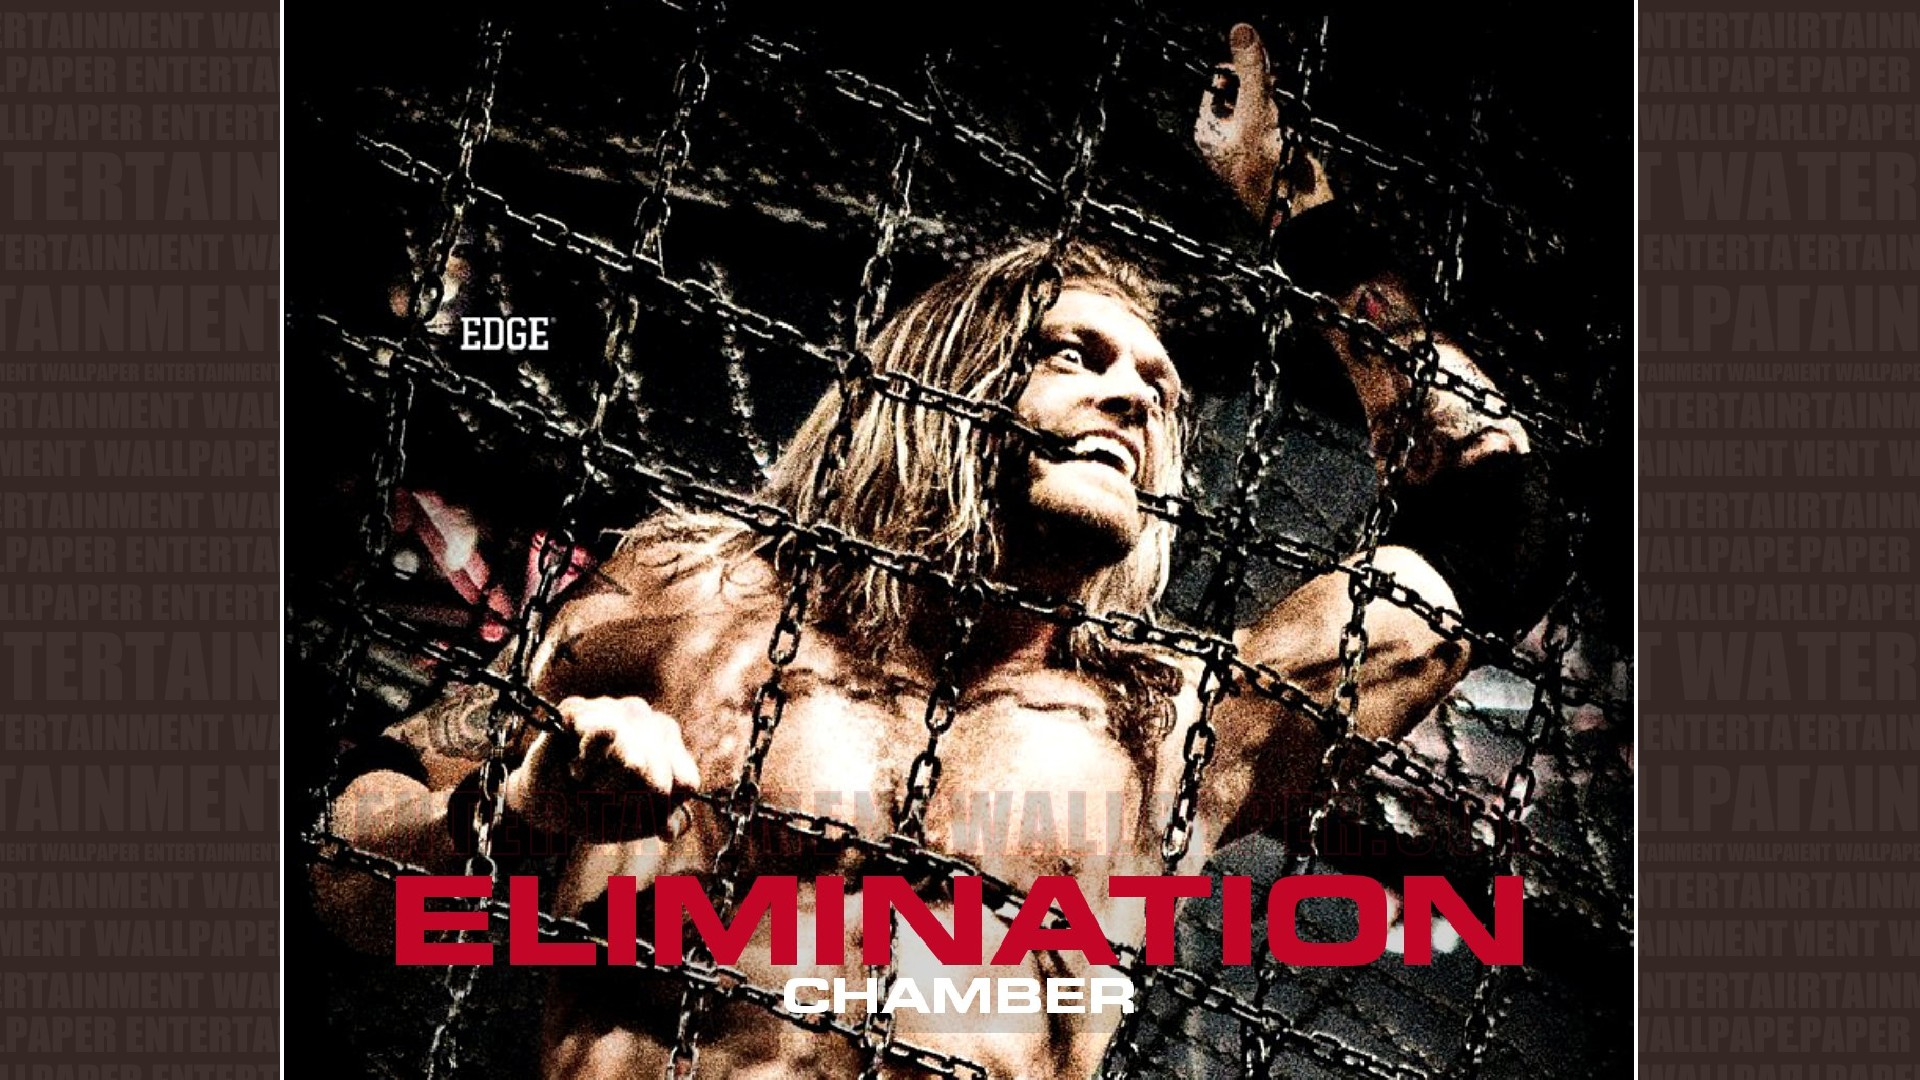 Elimination Chamber Wallpaper   20032534 1920x1080 1920x1080